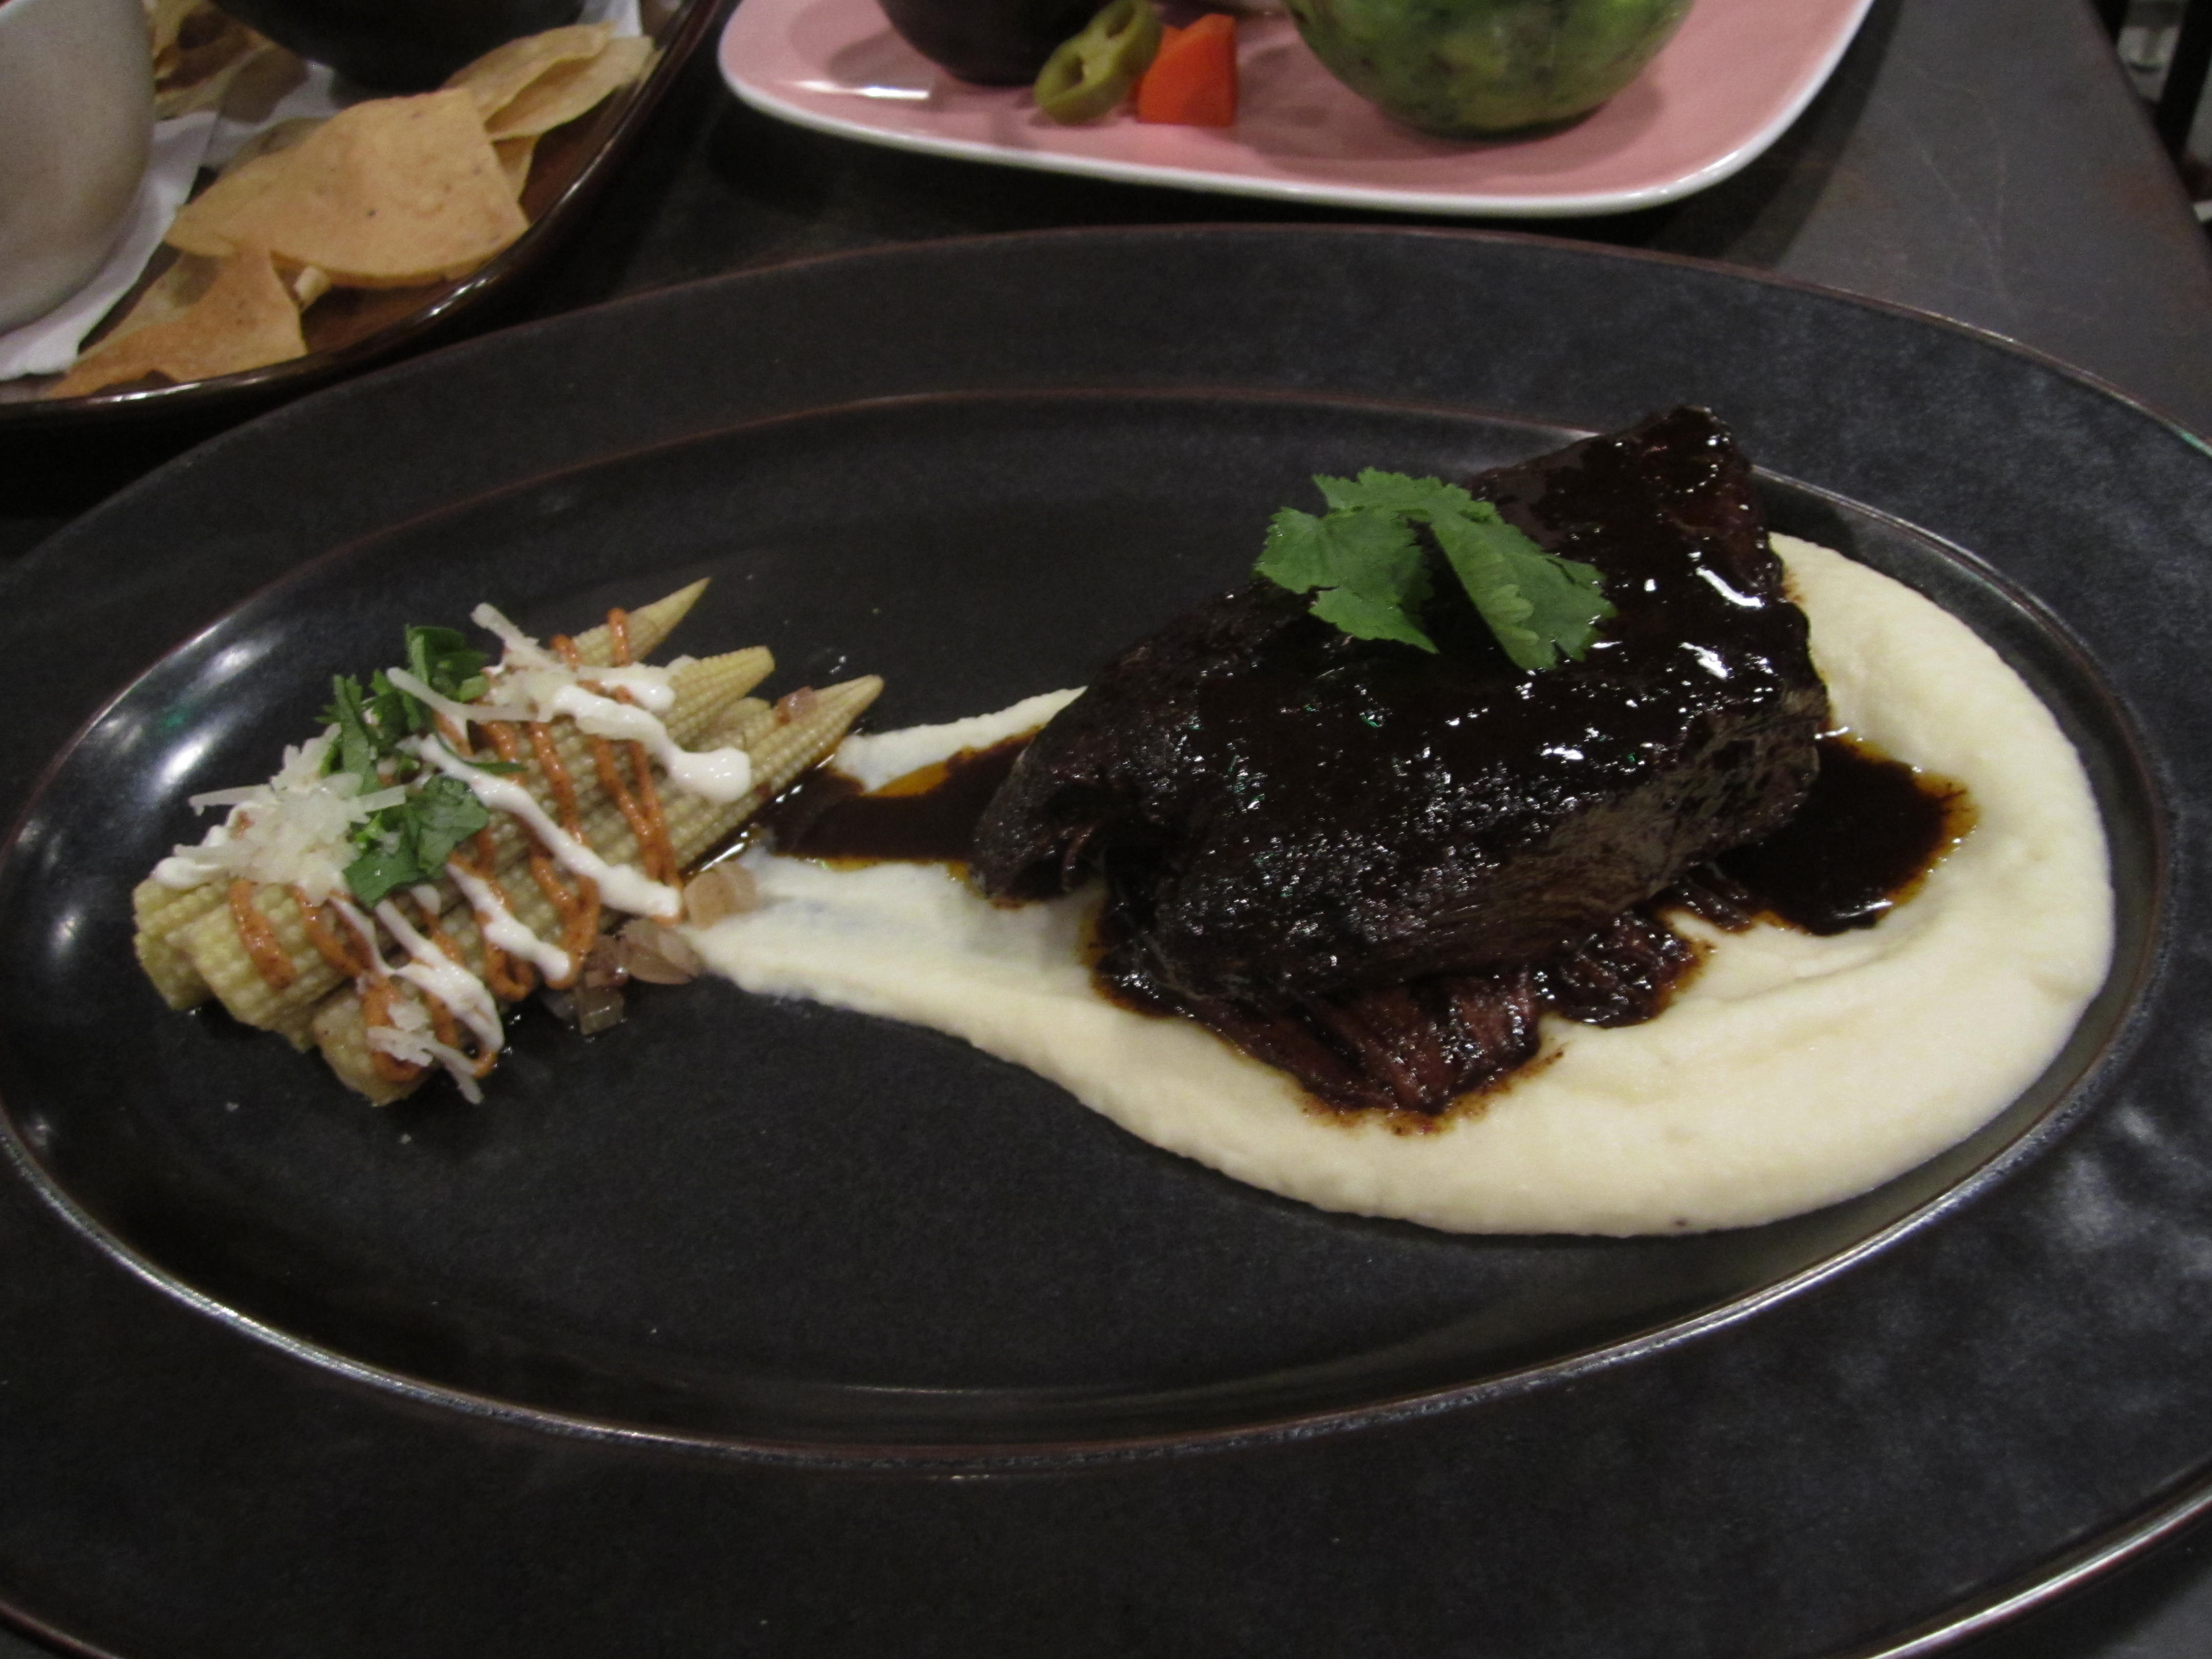 Brickhouse beef shortrib